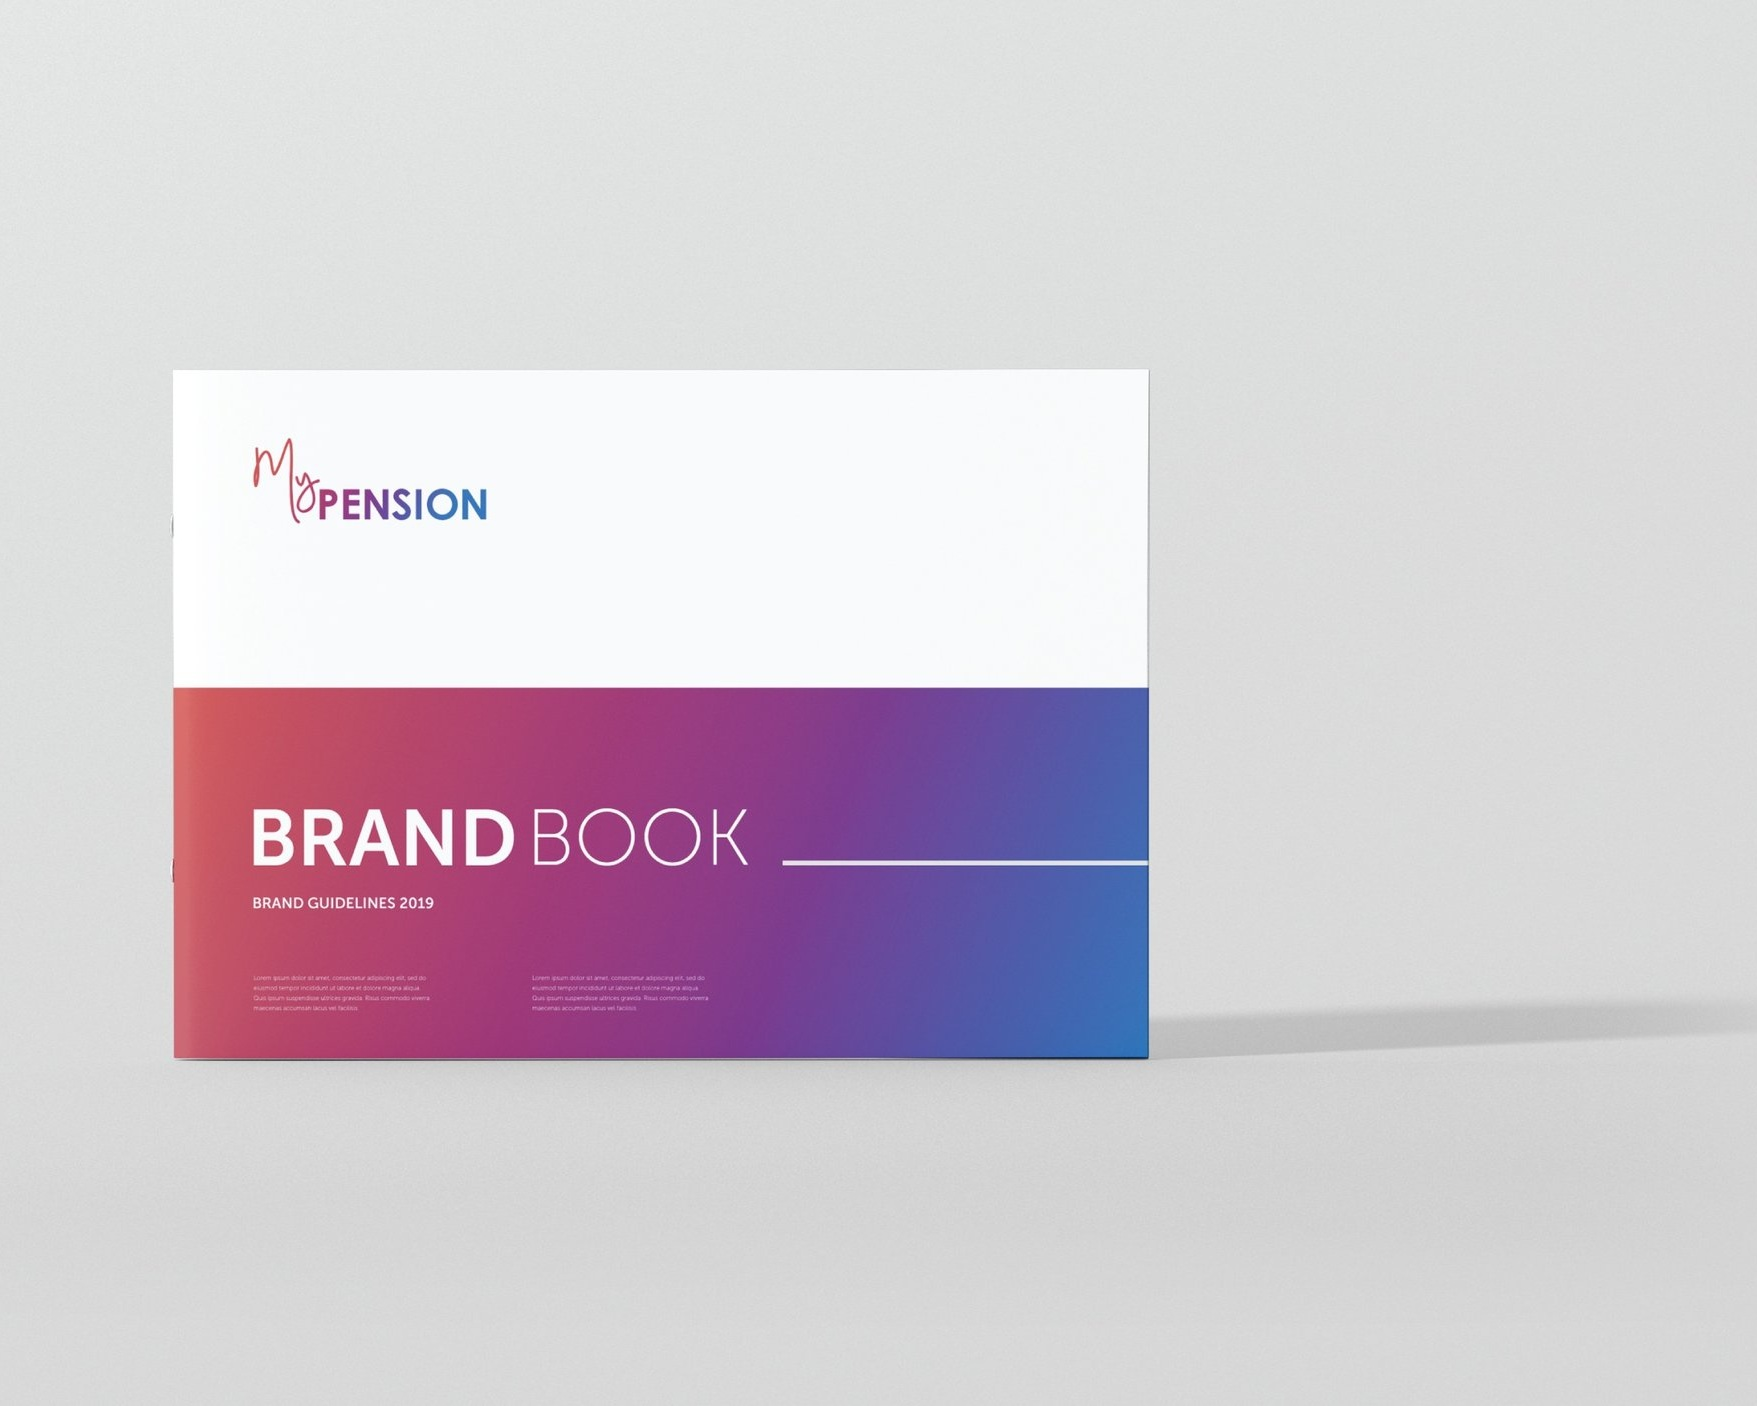 Benefits Branding - Creative / Brand Development / Messaging